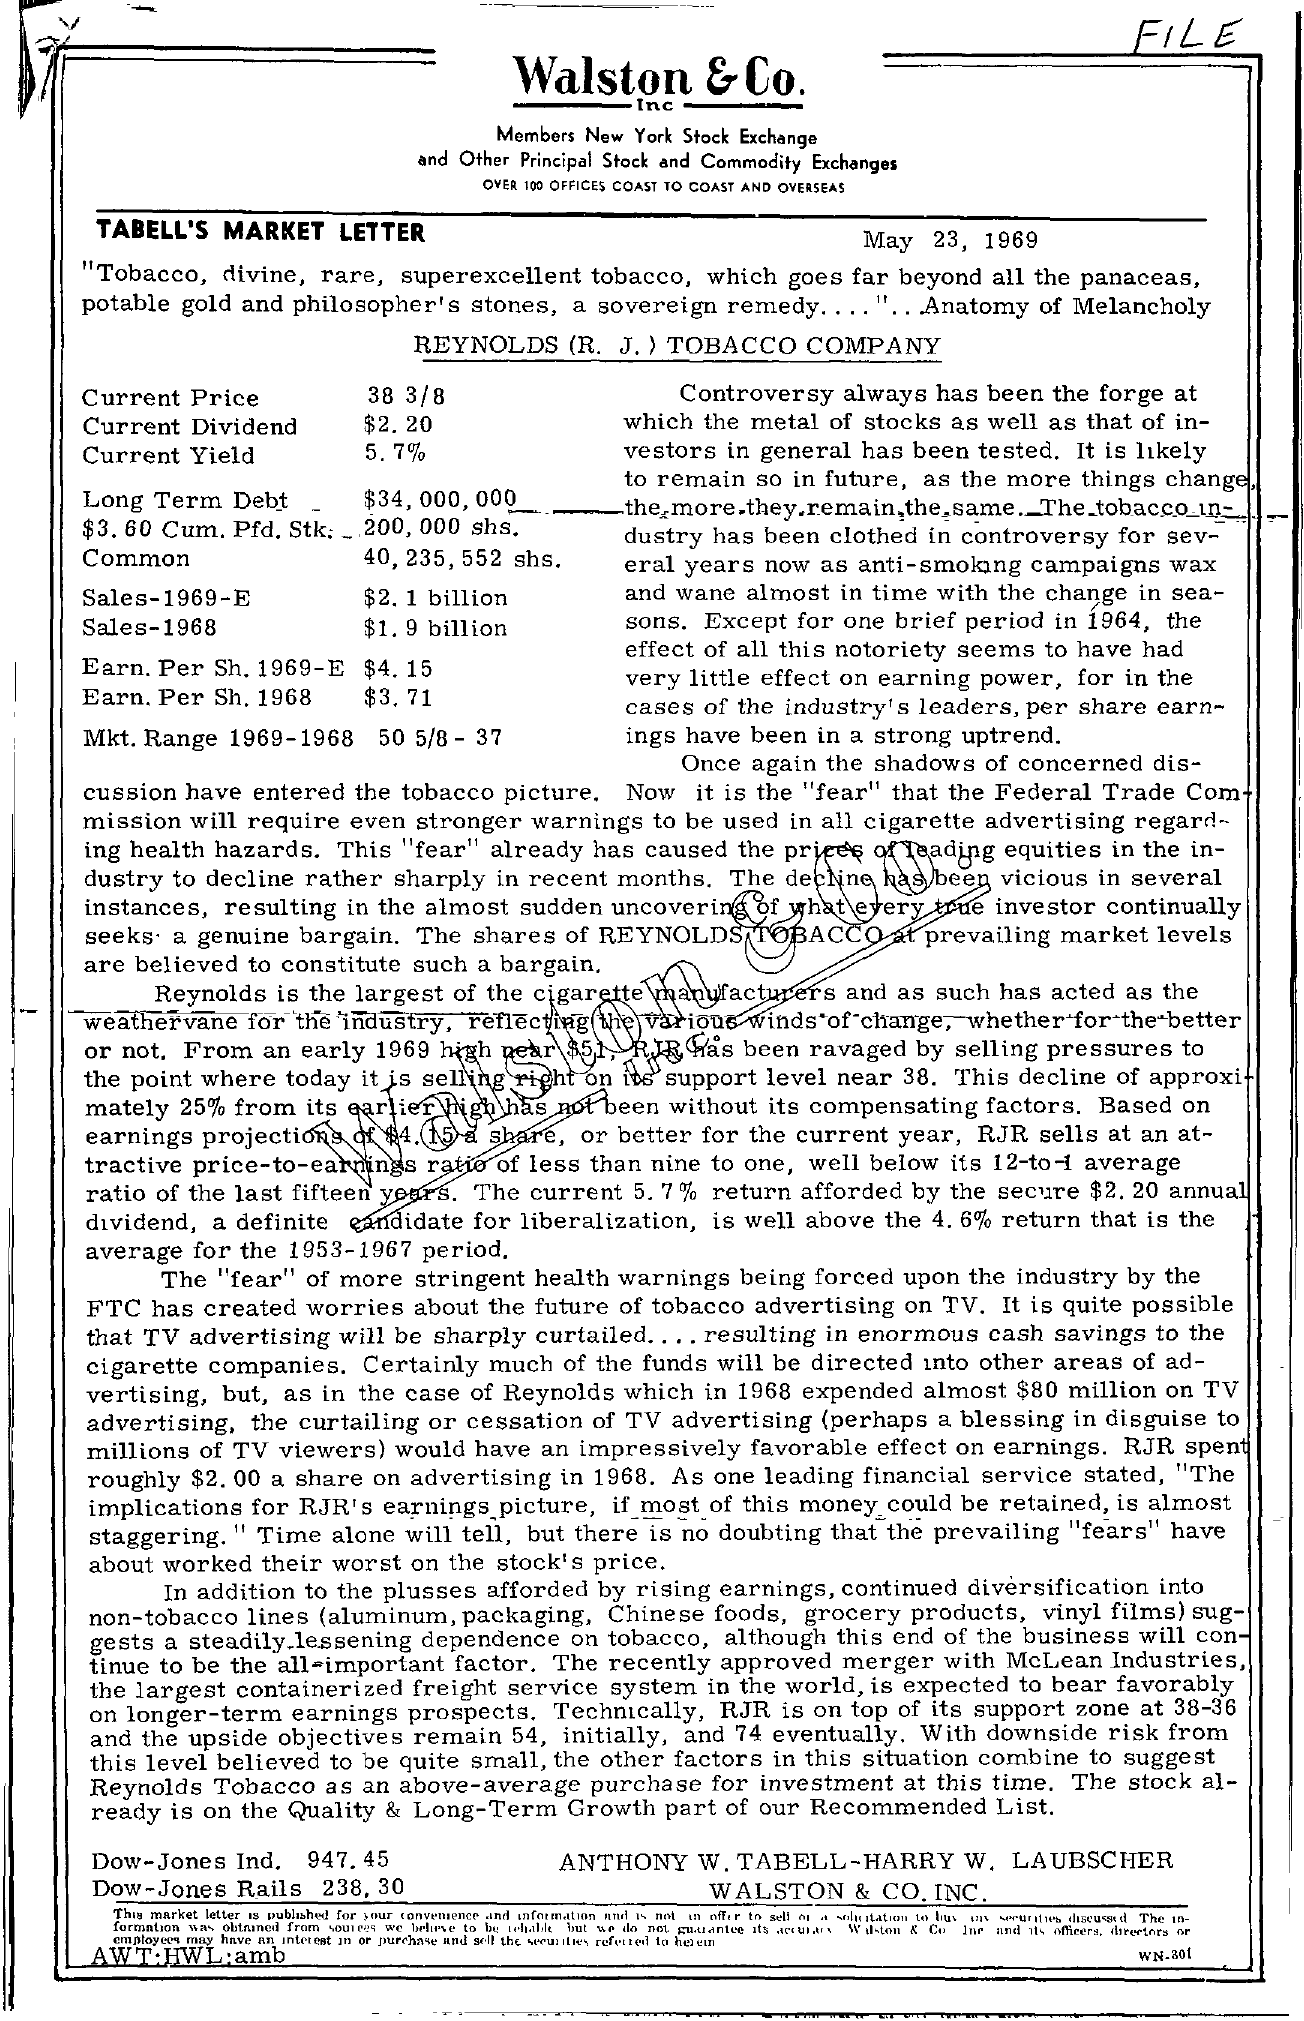 Tabell's Market Letter - May 23, 1969